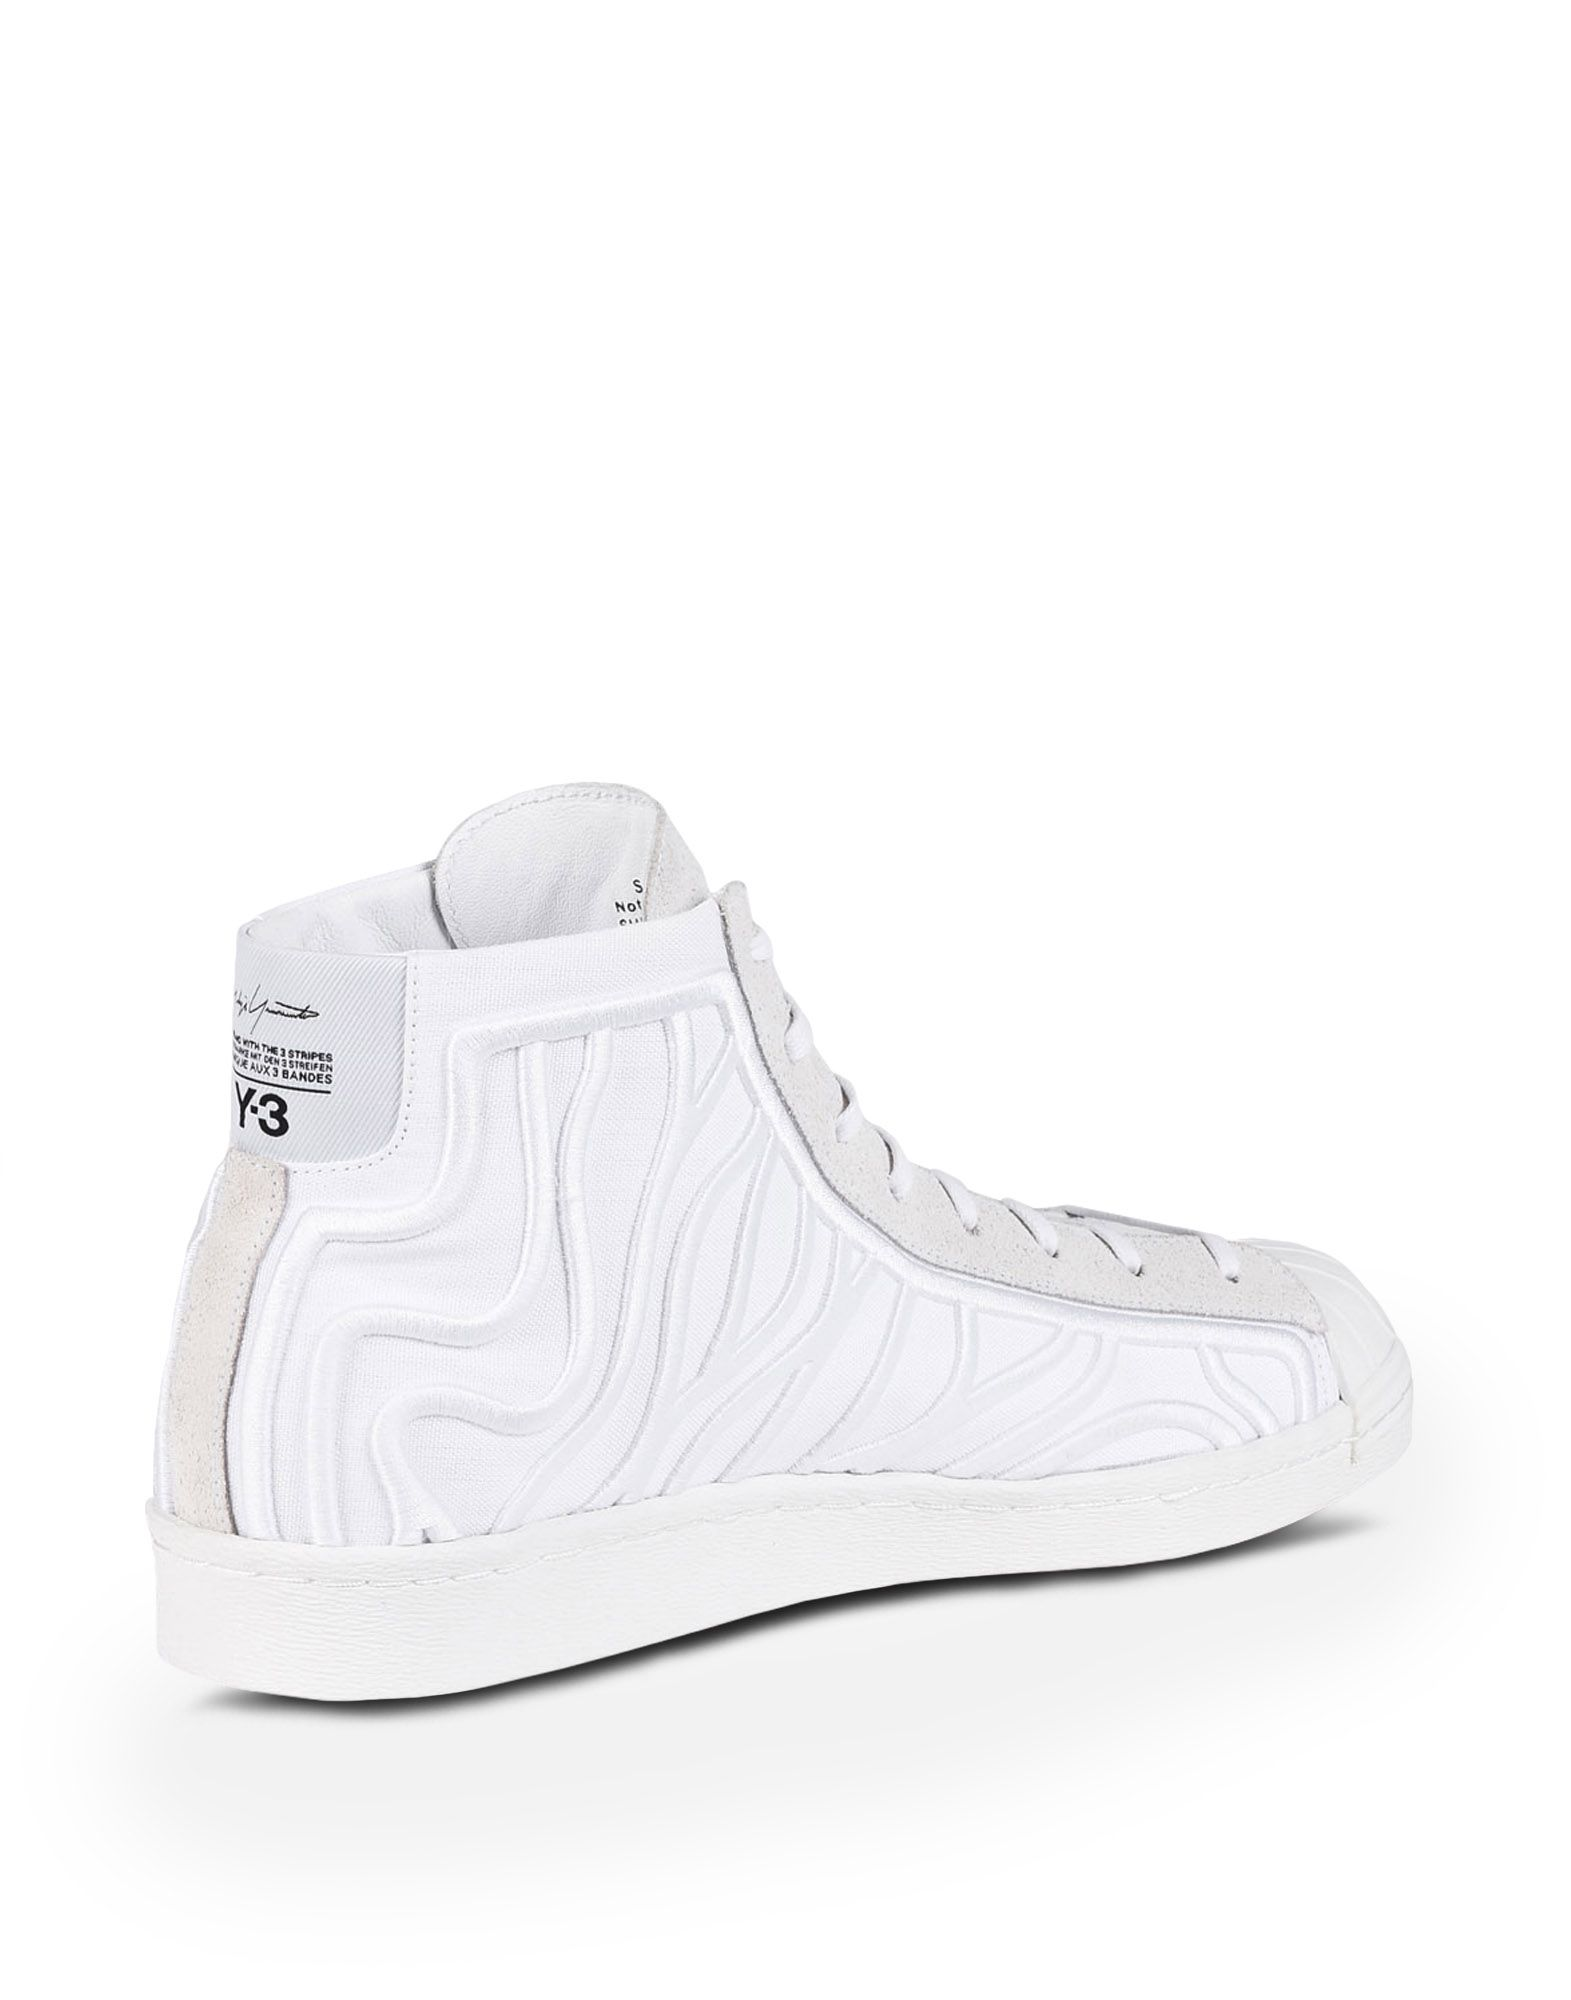 Off-White White Shishu Super High-top Sneakers wQkQjncMq